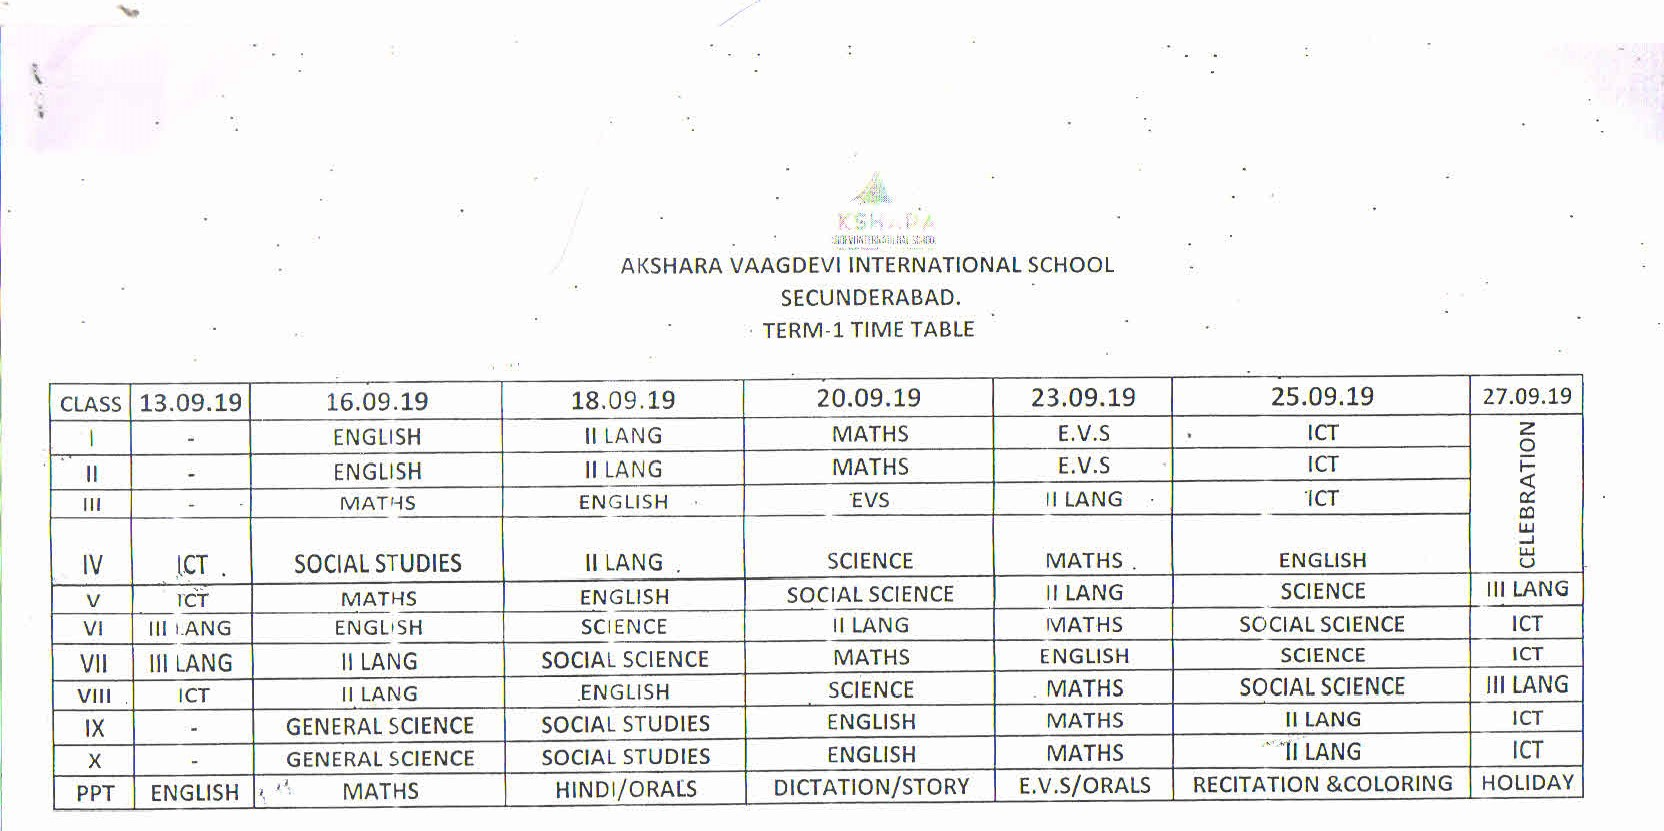 Term-1 Time-Table